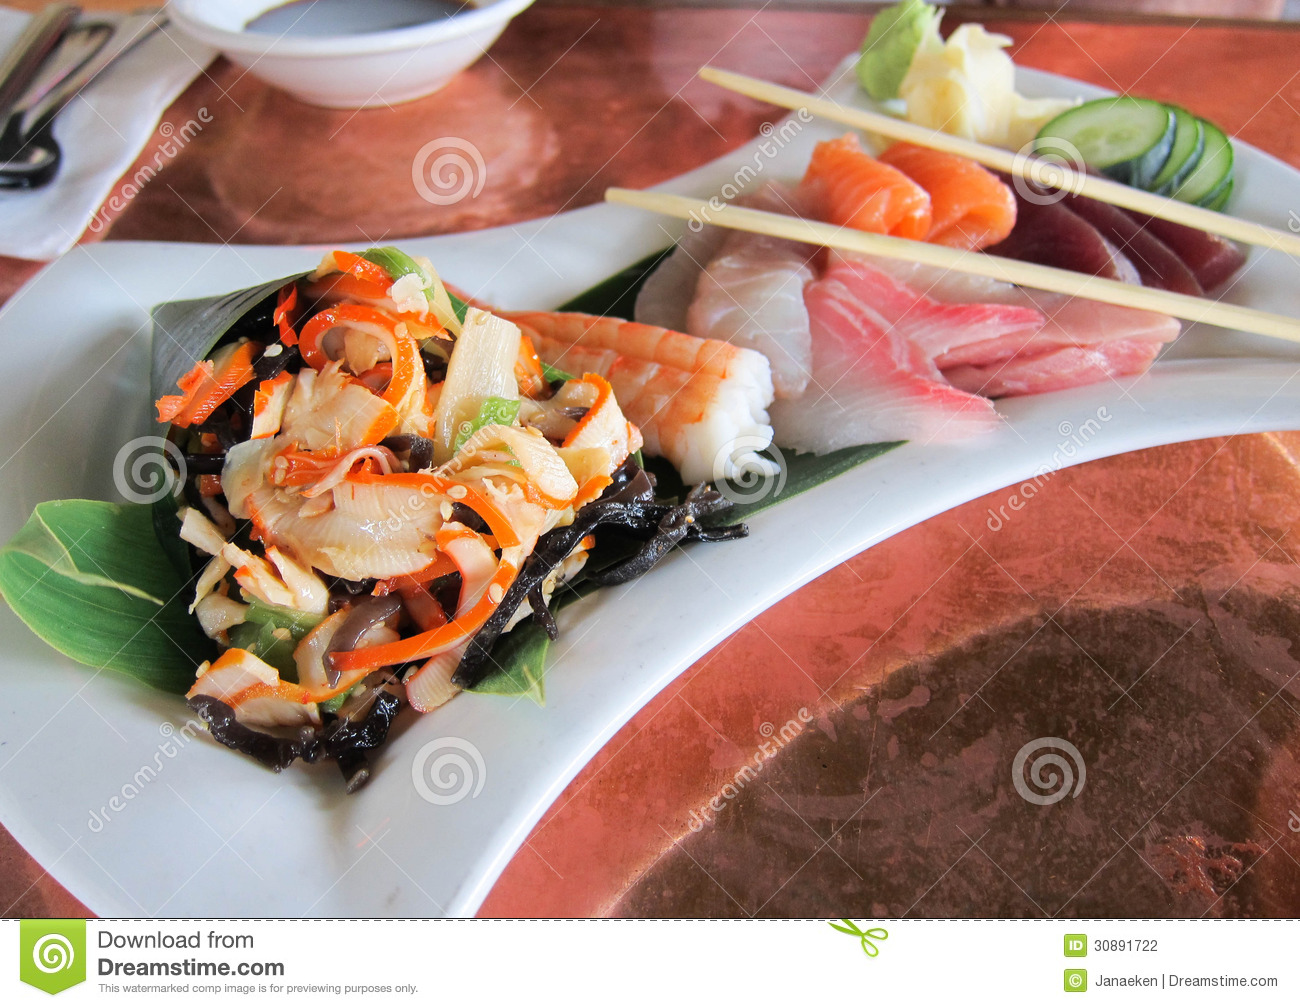 Sashimi, squid salad end vegetables served on a white plate. By ...